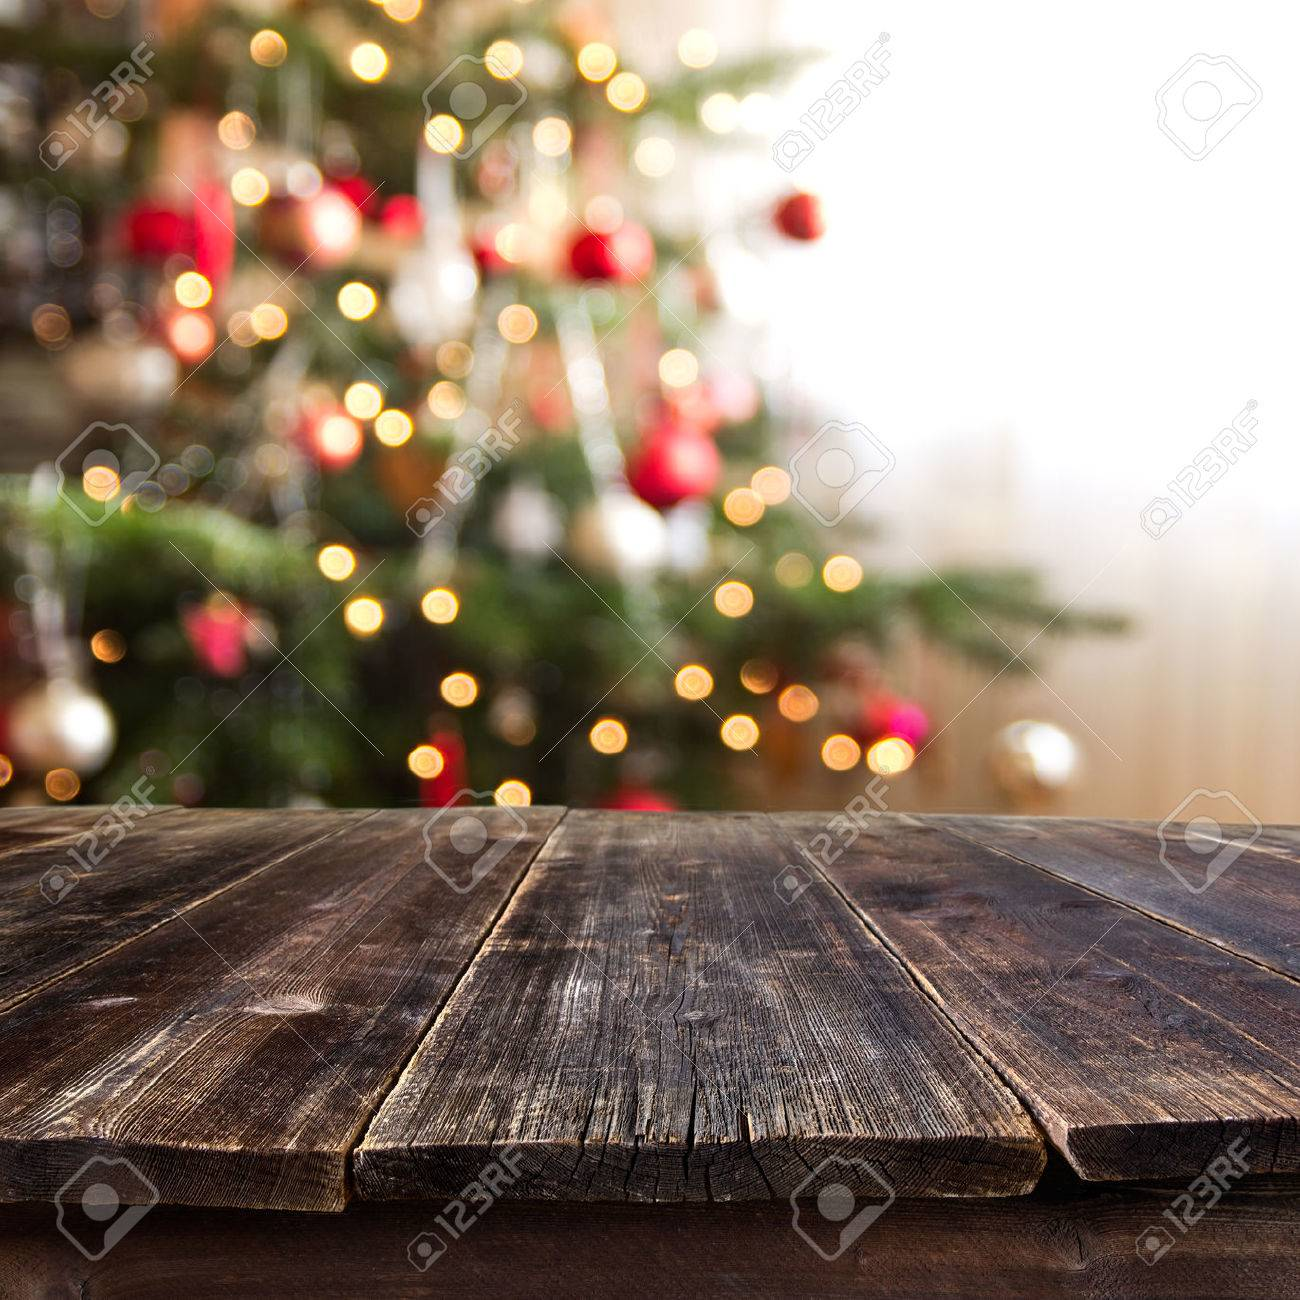 christmas table for product montage - 32723553